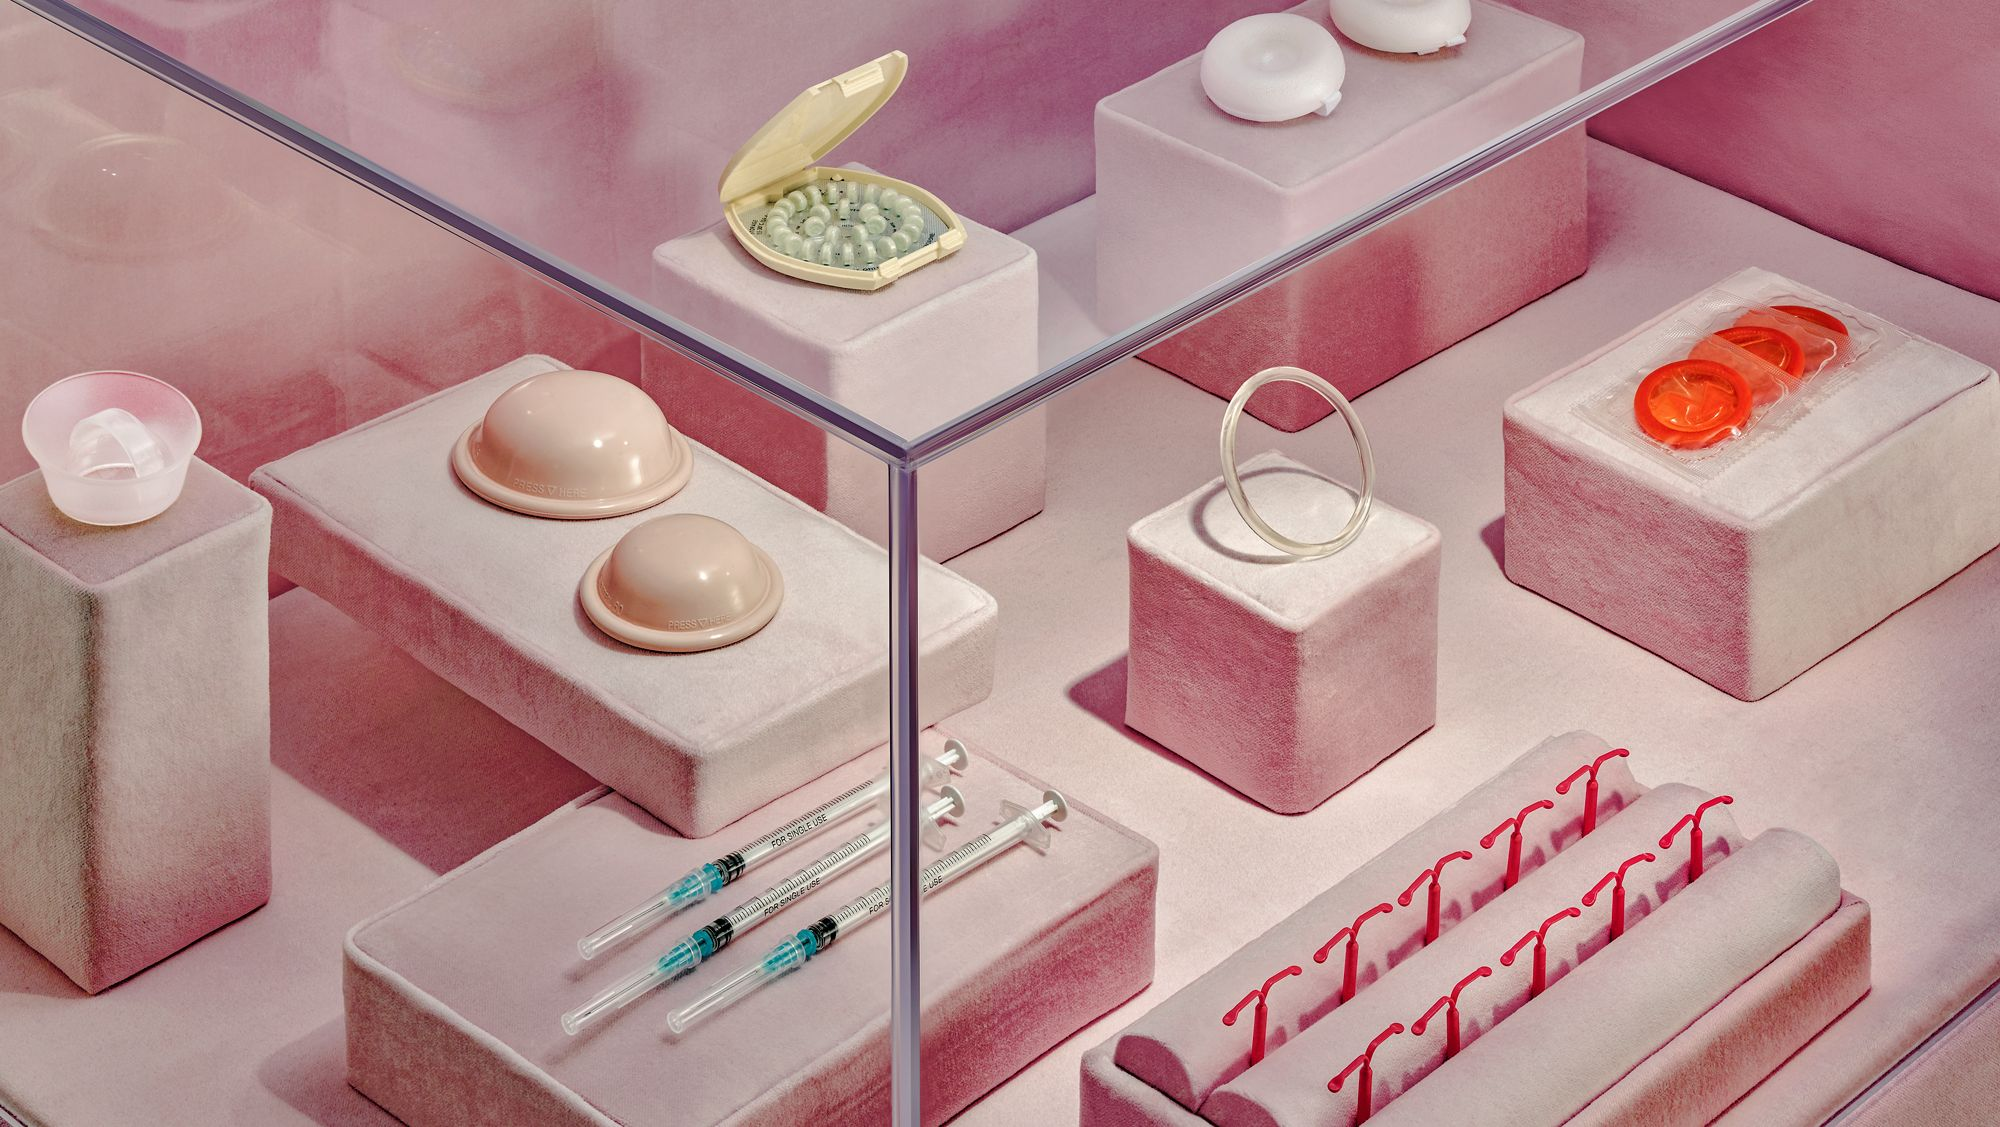 Birth Control: Will It Become the Ultimate Luxury?